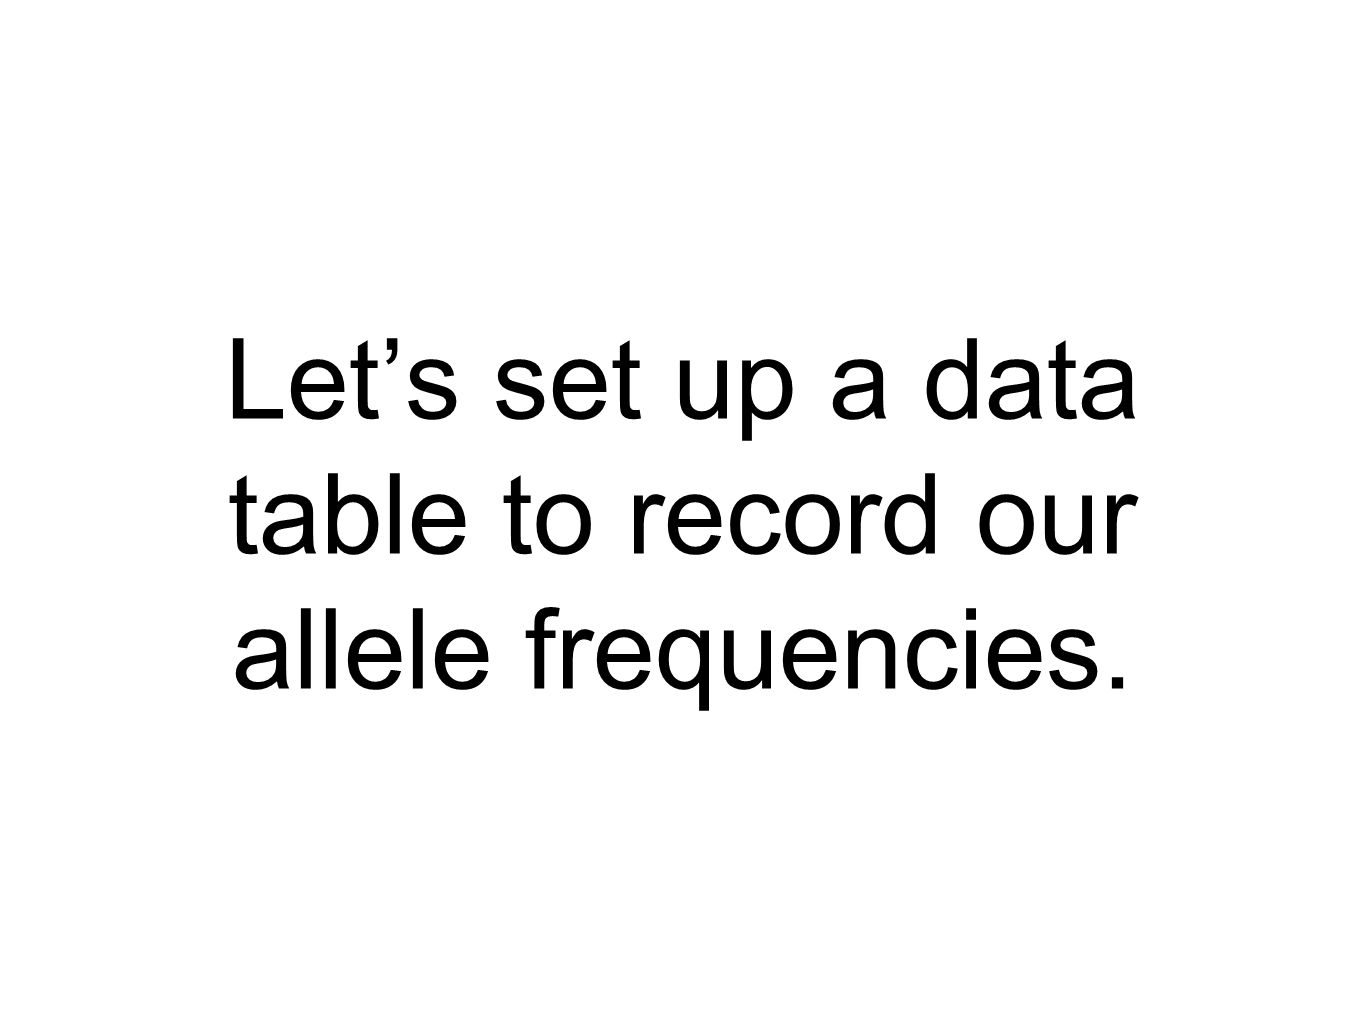 Let's set up a data table to record our allele frequencies.